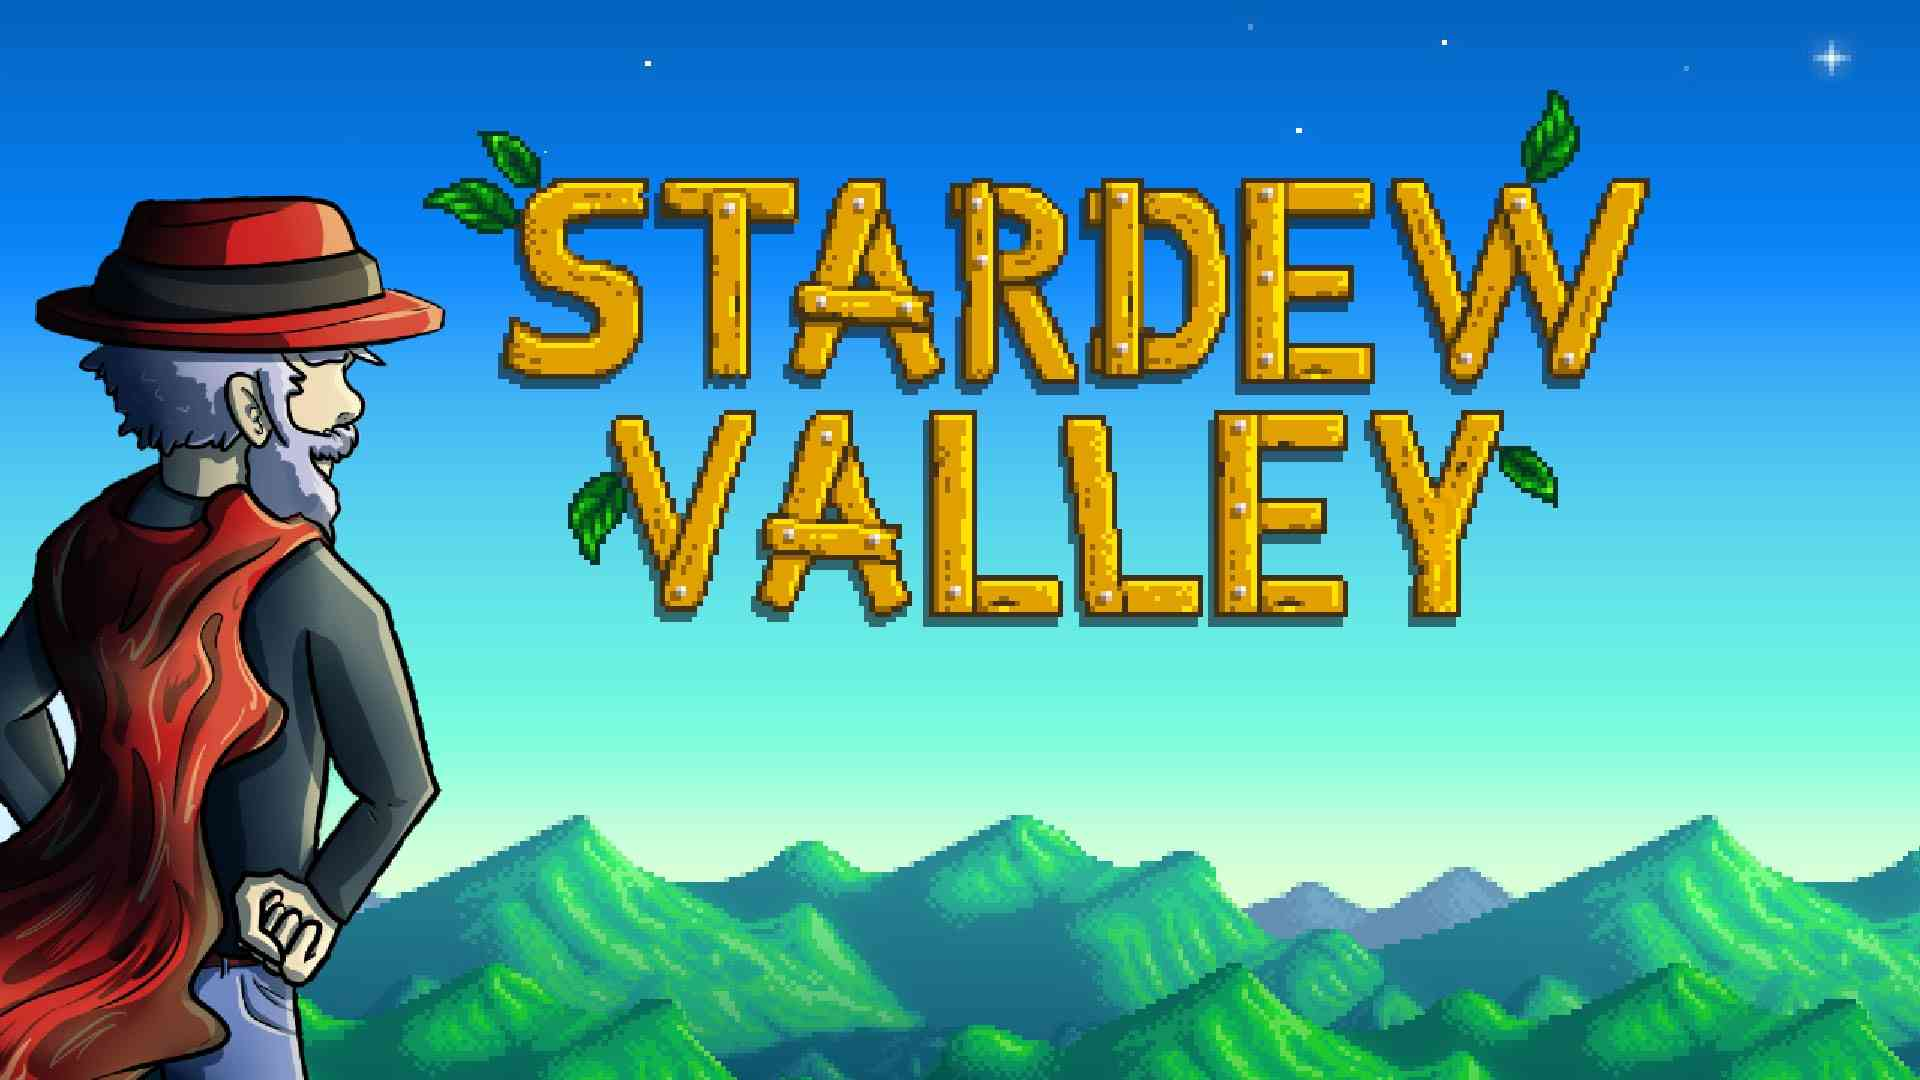 Gear Wallpaper Hd Stardew Valley Finally Comes To Mac Linux